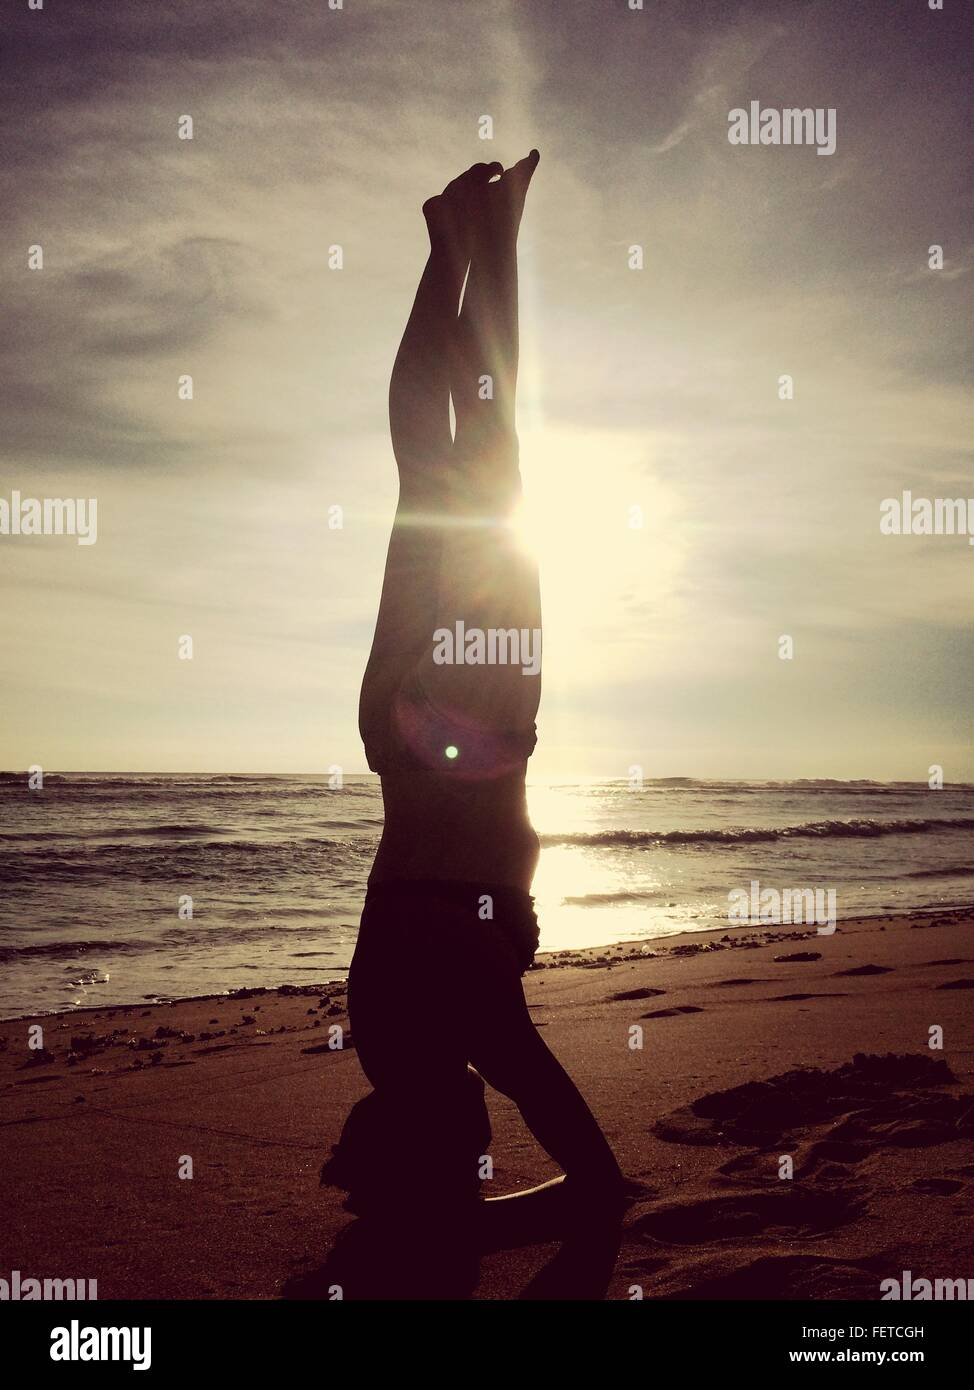 Silhouette Woman Performing Wavecrest On Beach Photo Stock